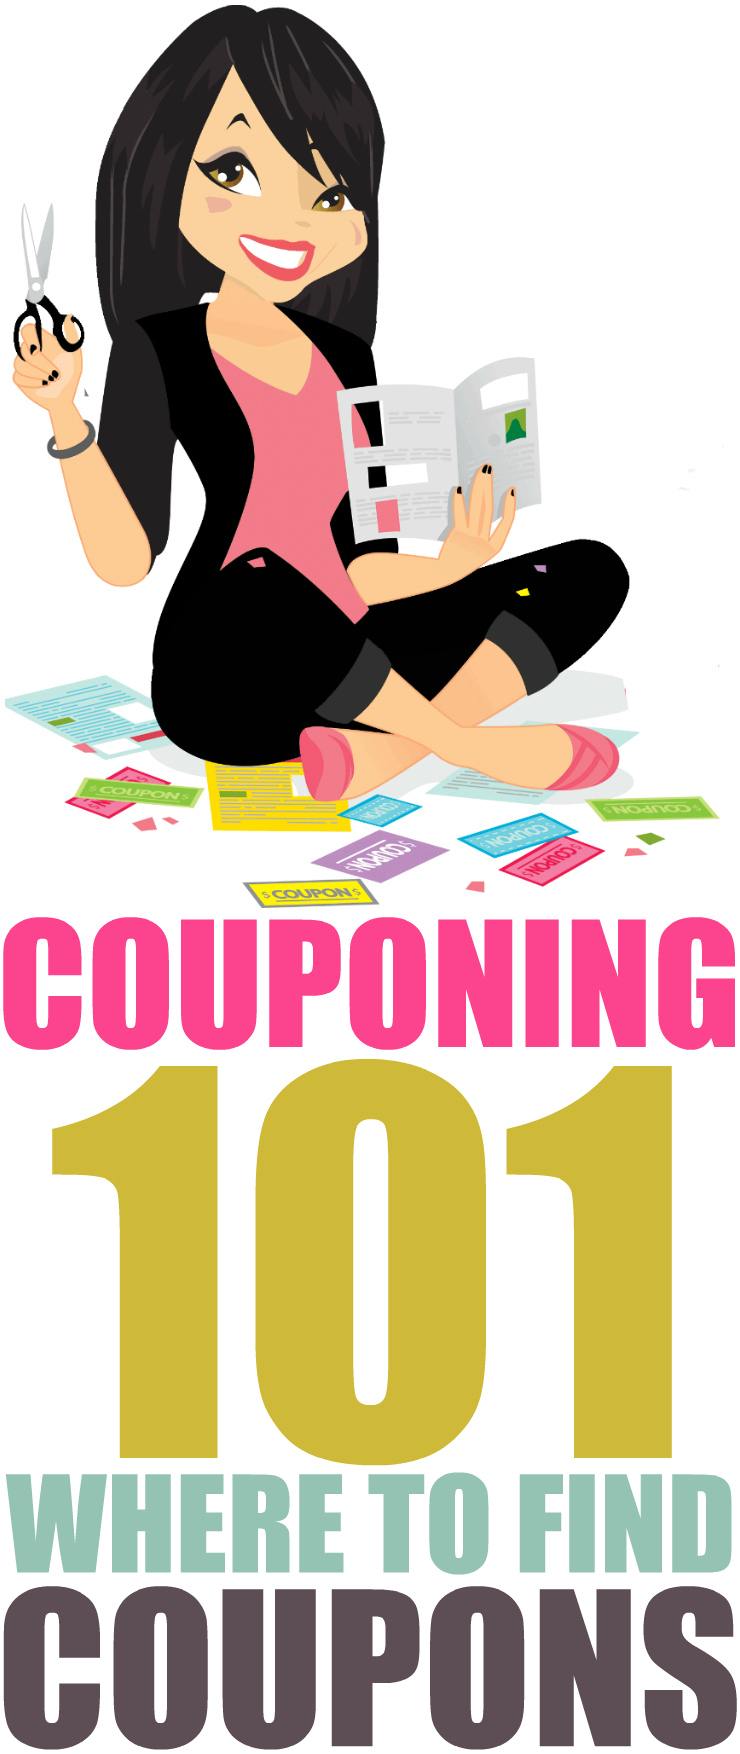 Couponing 101: Where To Find Coupons - Extreme Couponing Mom - Free Printable Coupons Ontario